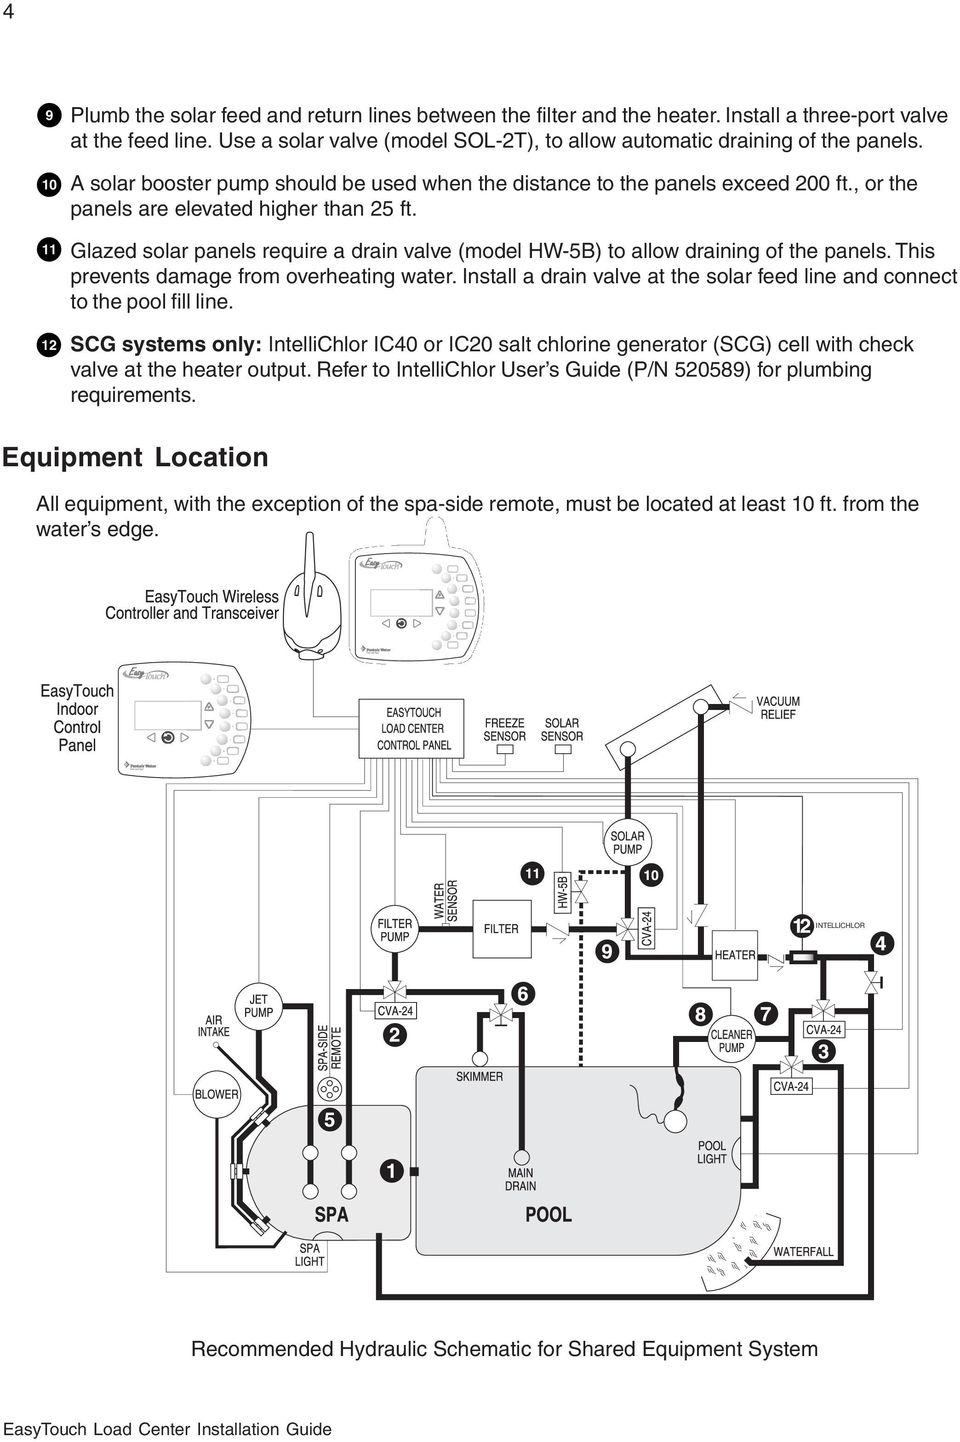 Easytouch 8 And 4 Pool Spa Control System With Optional Pentair Plumbing Diagram Free Download Wiring Schematic Or The Panels Are Elevated Higher Than 25 Ft Glazed Solar Require A